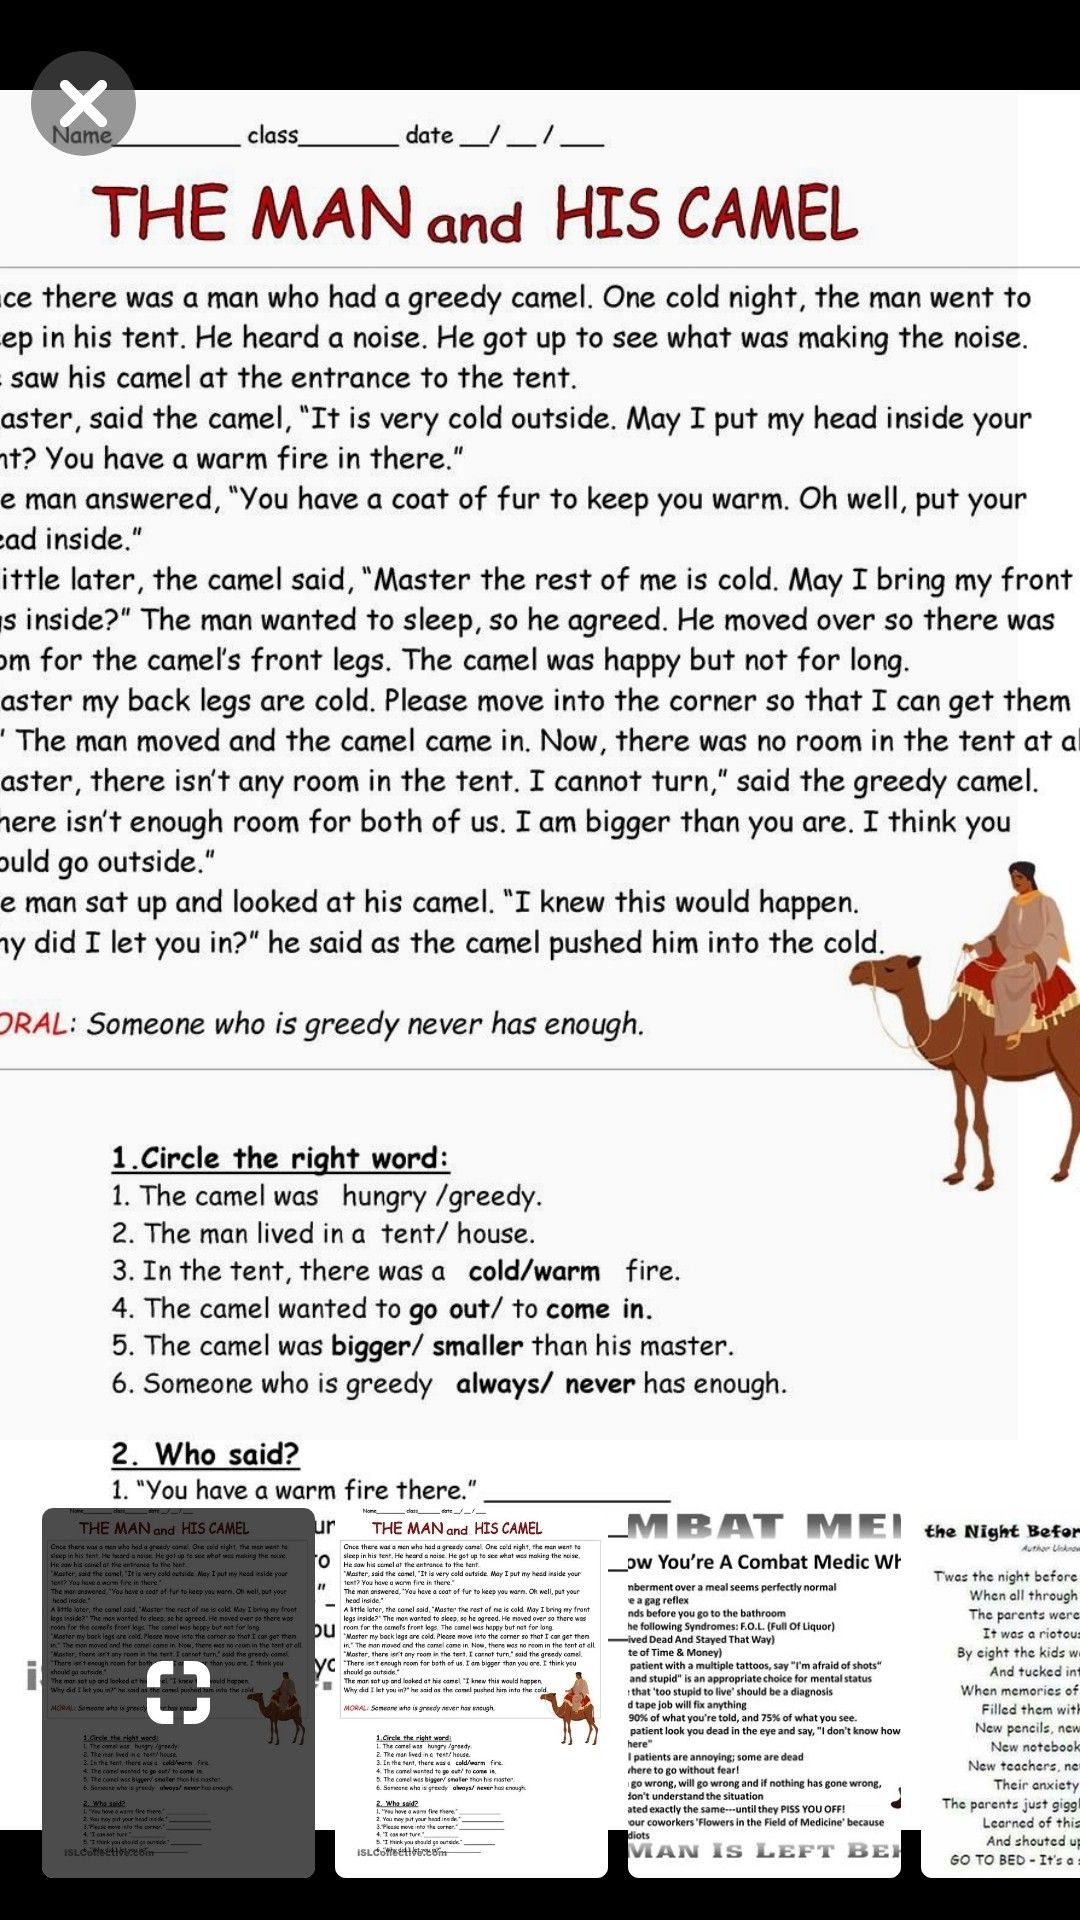 Pin By Tulip Flower On Guided Reading Comprehension English Stories For Kids English Short Stories 2nd Grade Reading Worksheets [ 1920 x 1080 Pixel ]